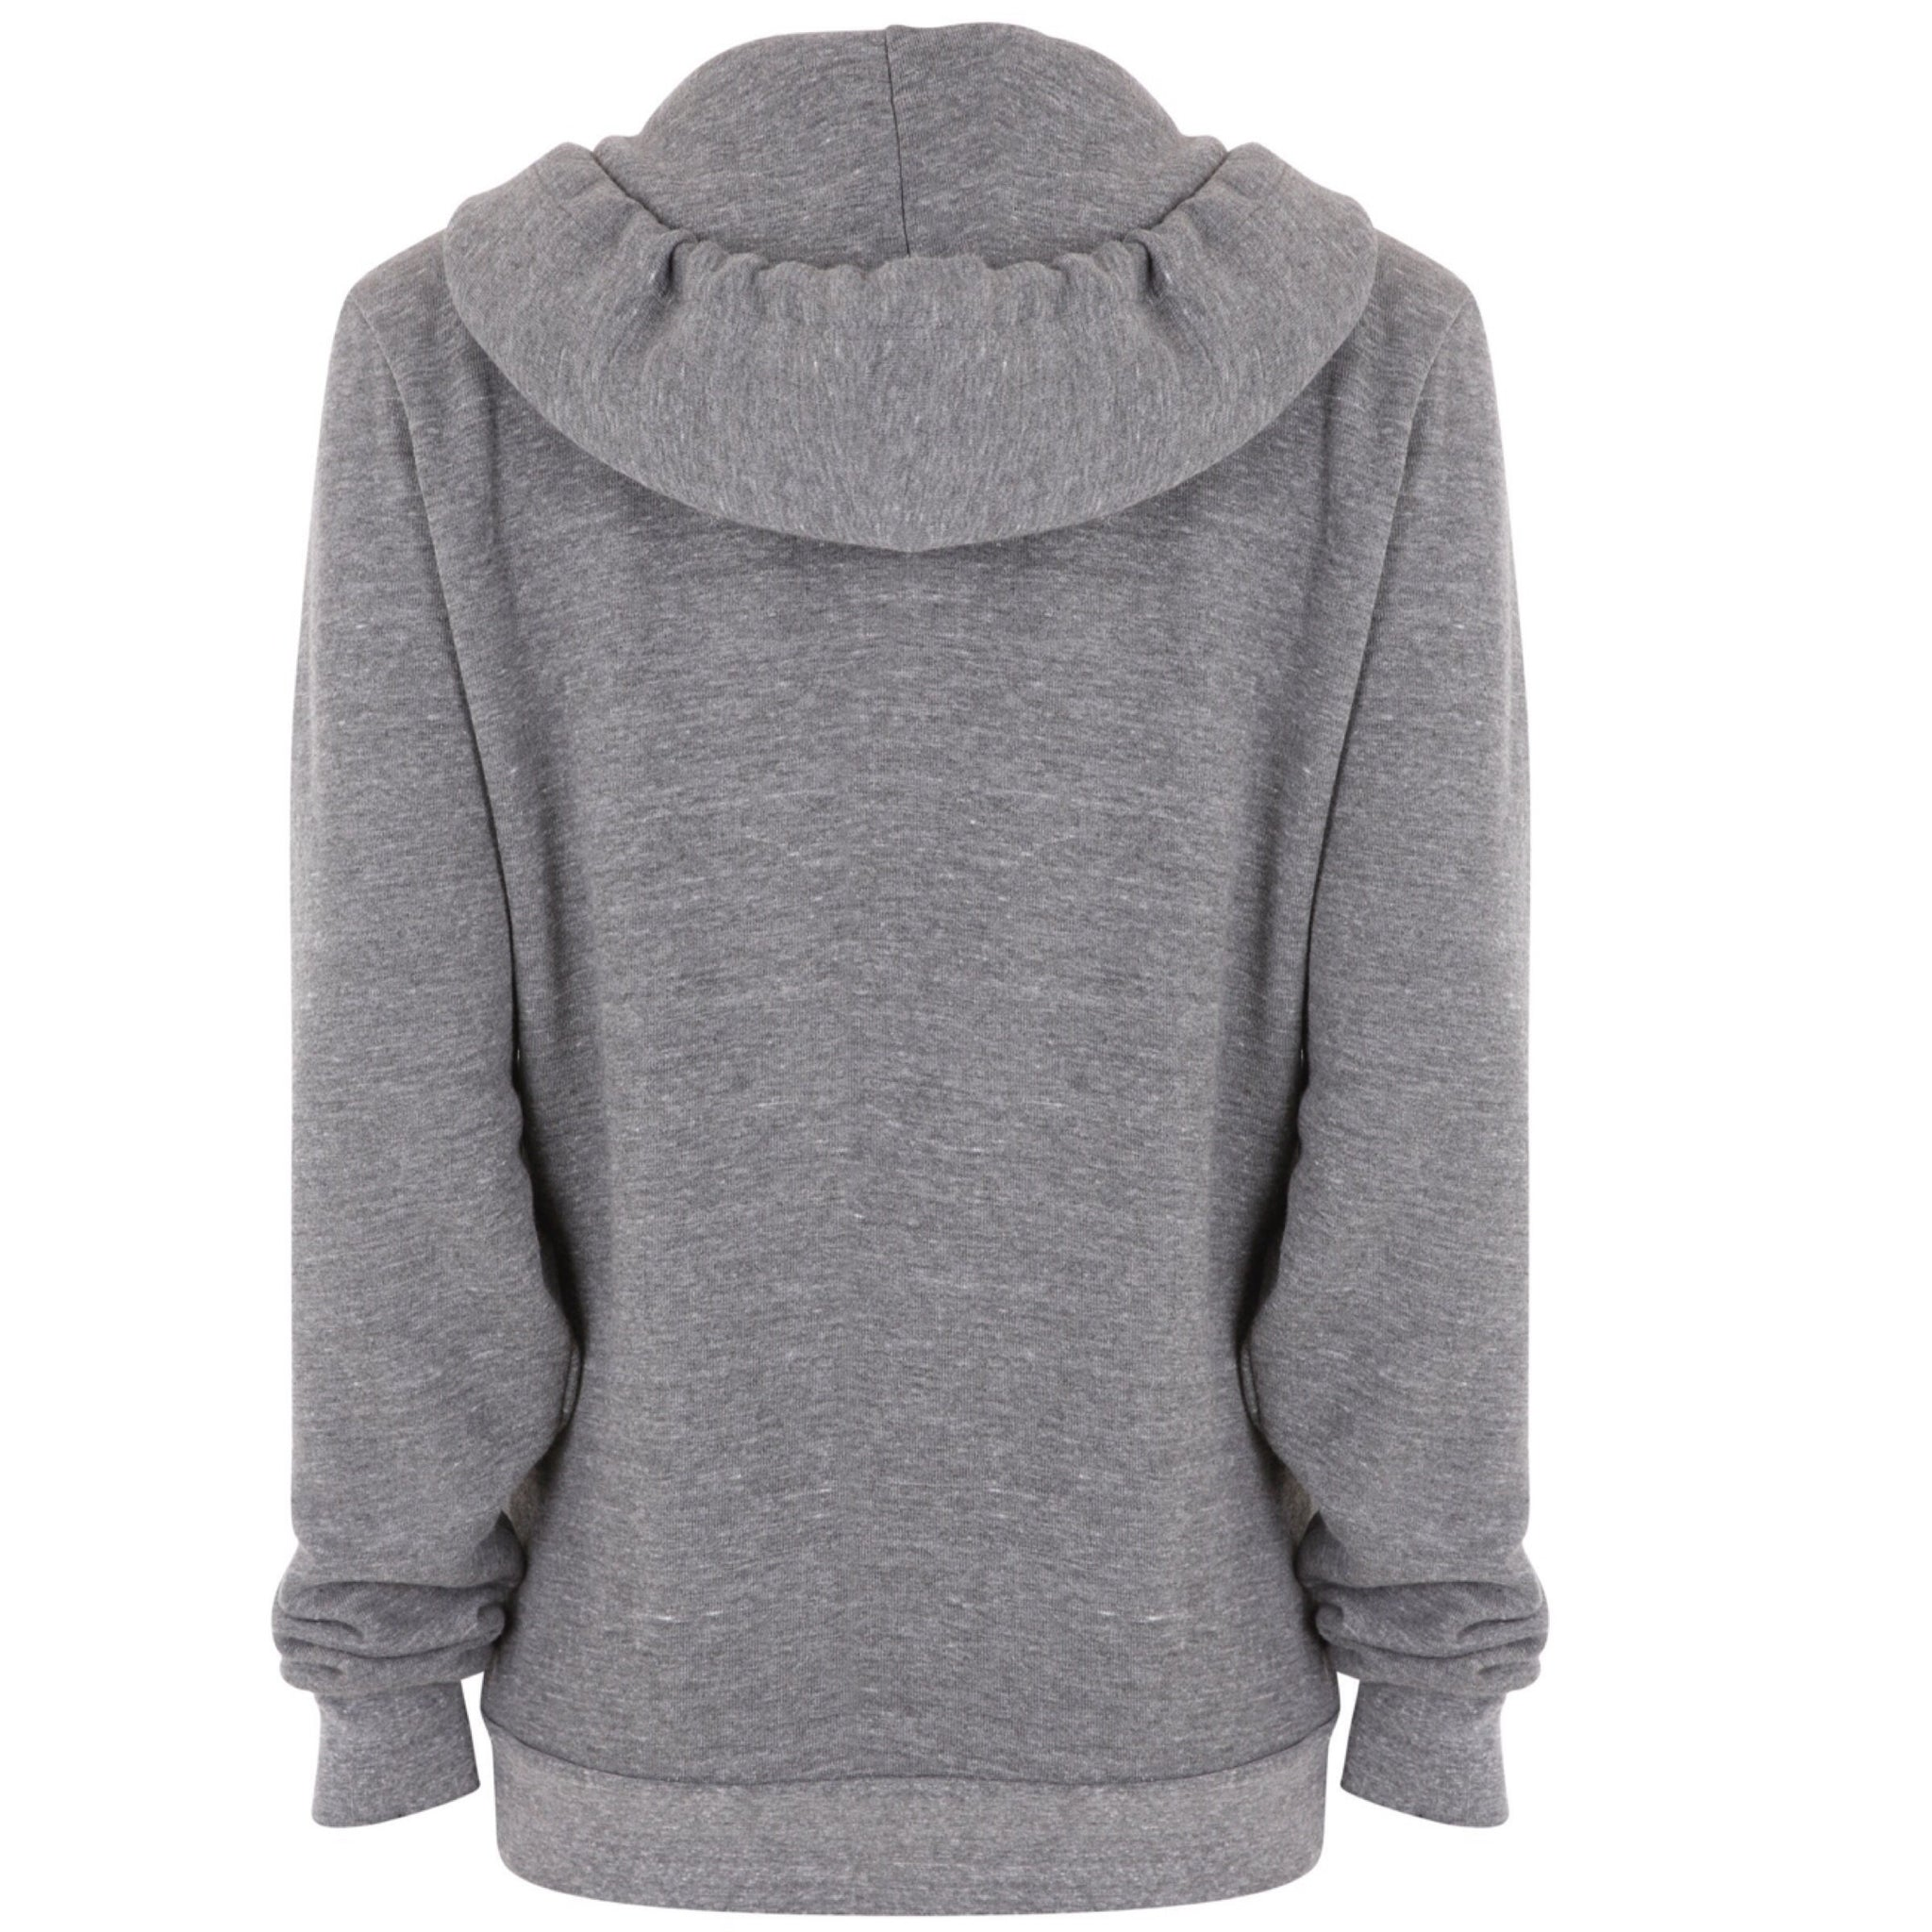 5 Stripe Heather Grey Zip Up